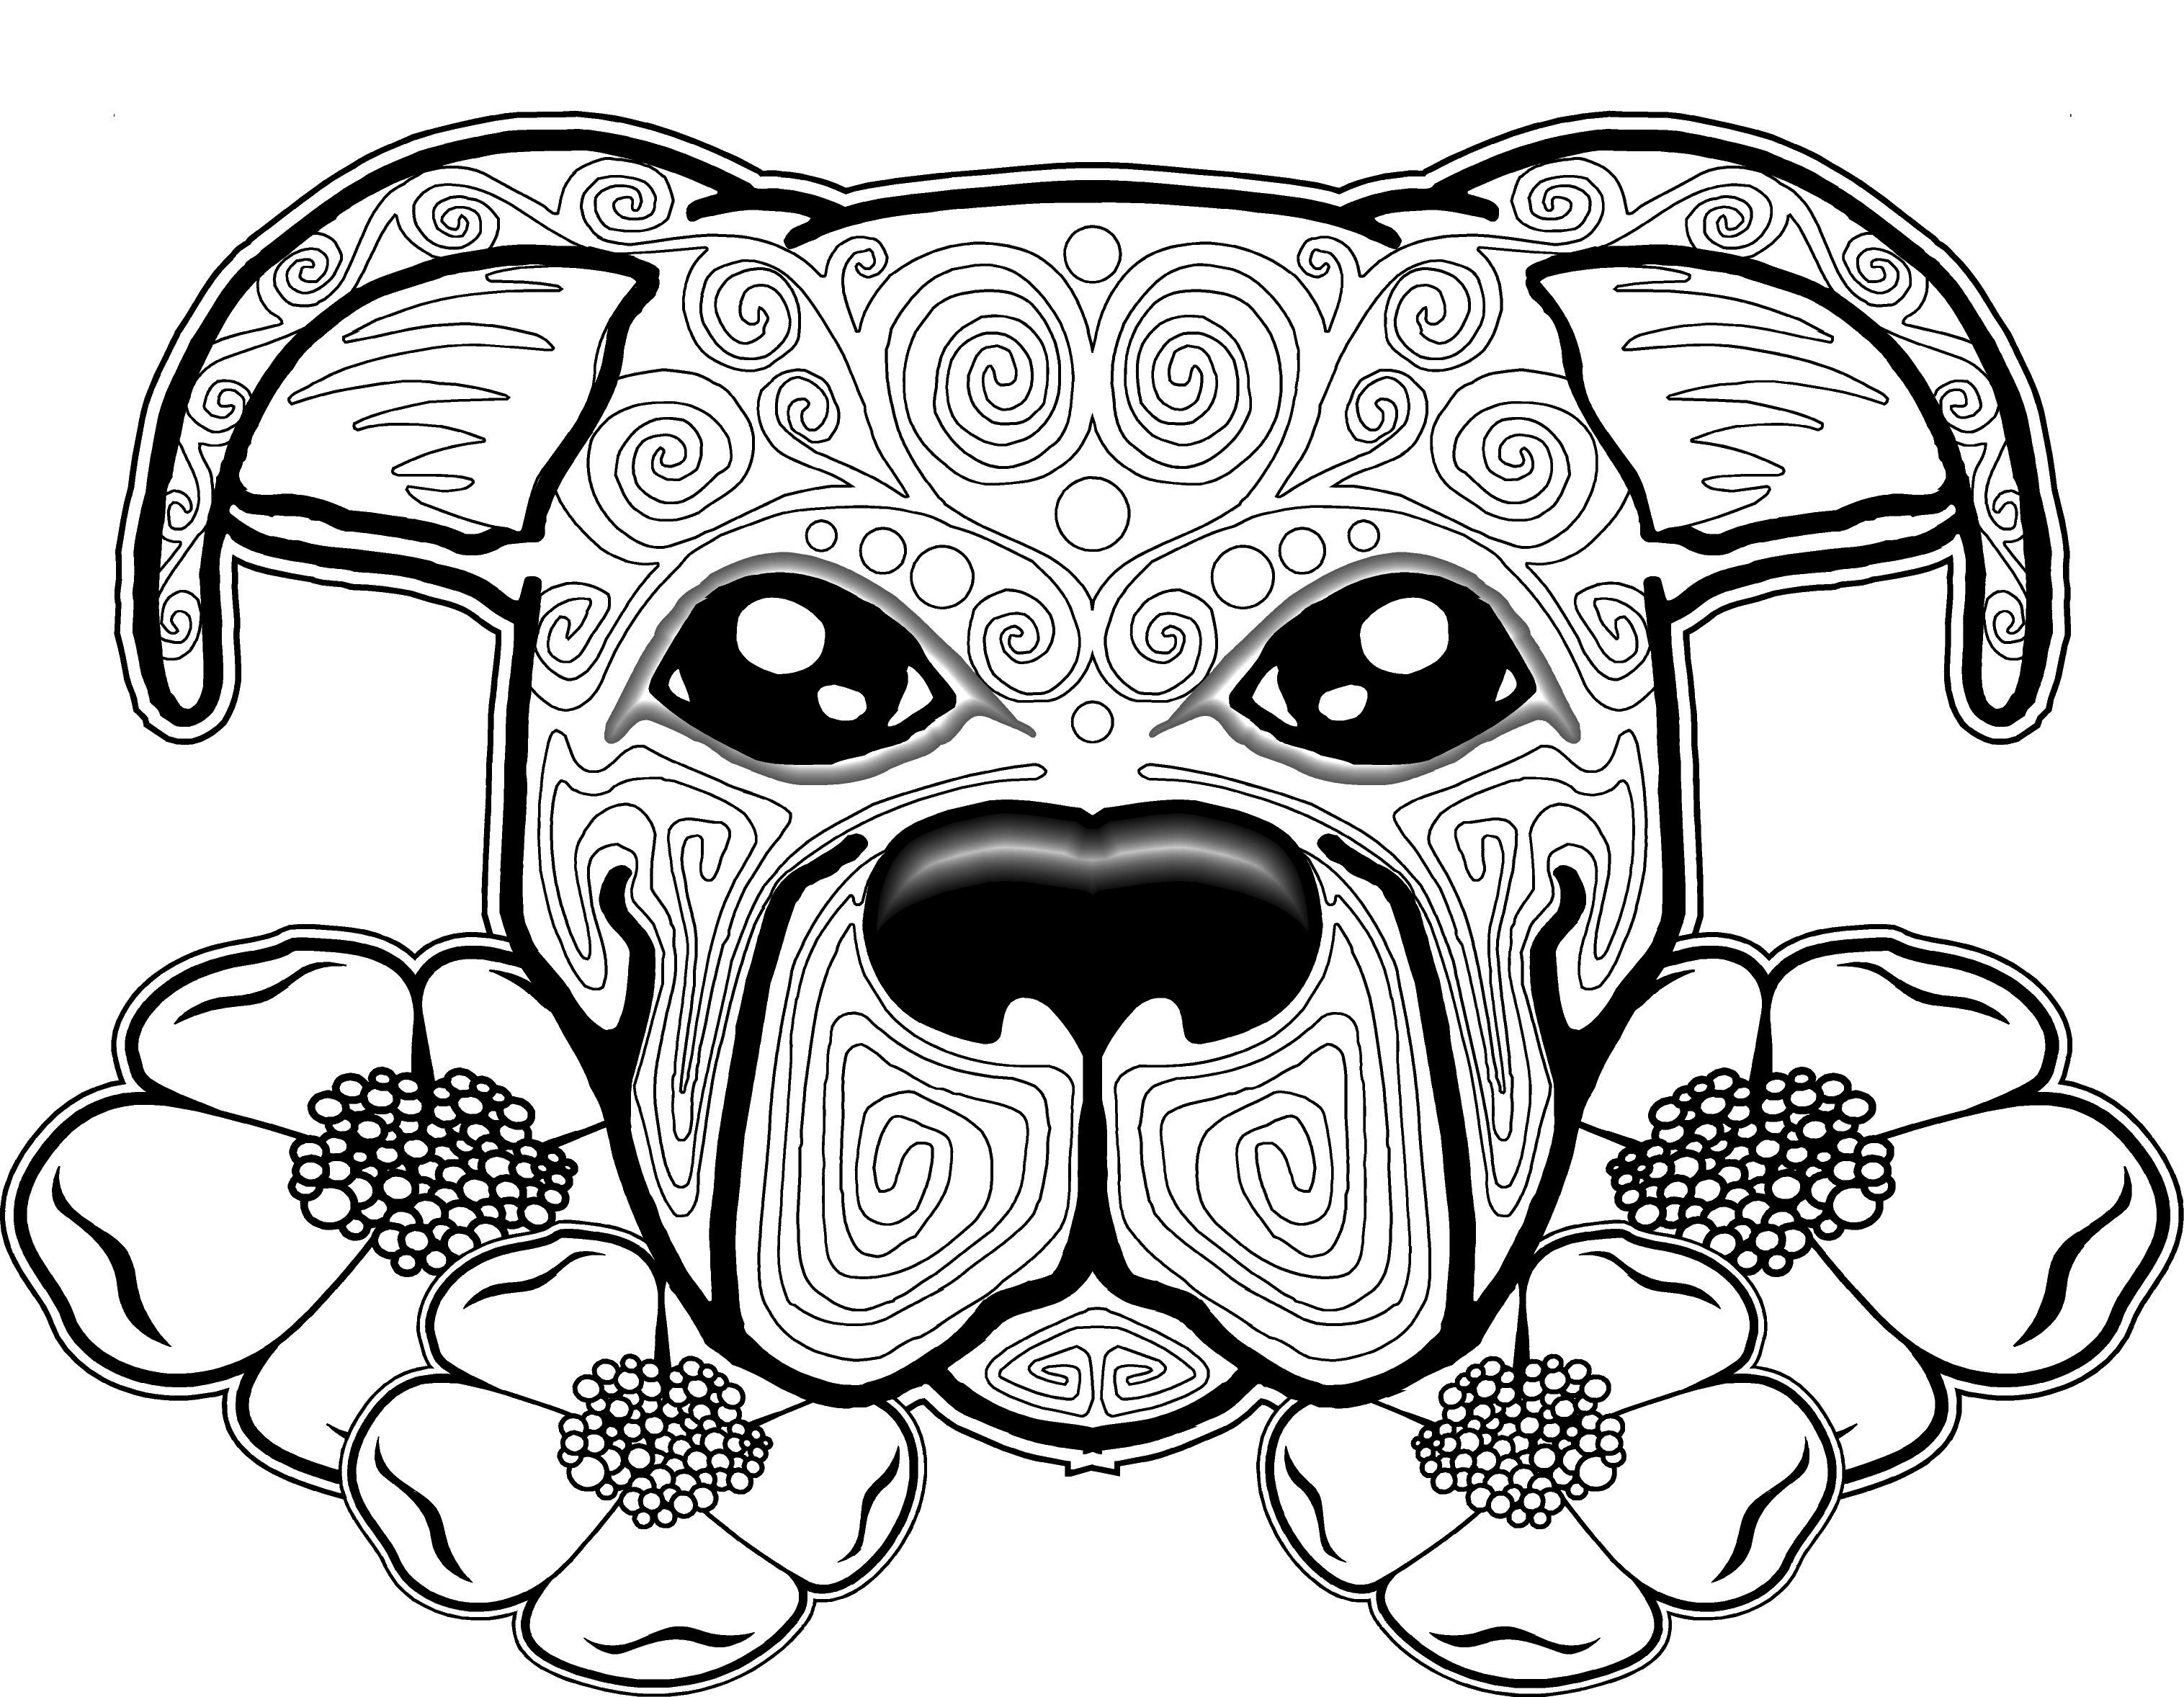 coloring pages for adults dogs dog coloring book adultcoloringbookz coloring pages adults dogs for